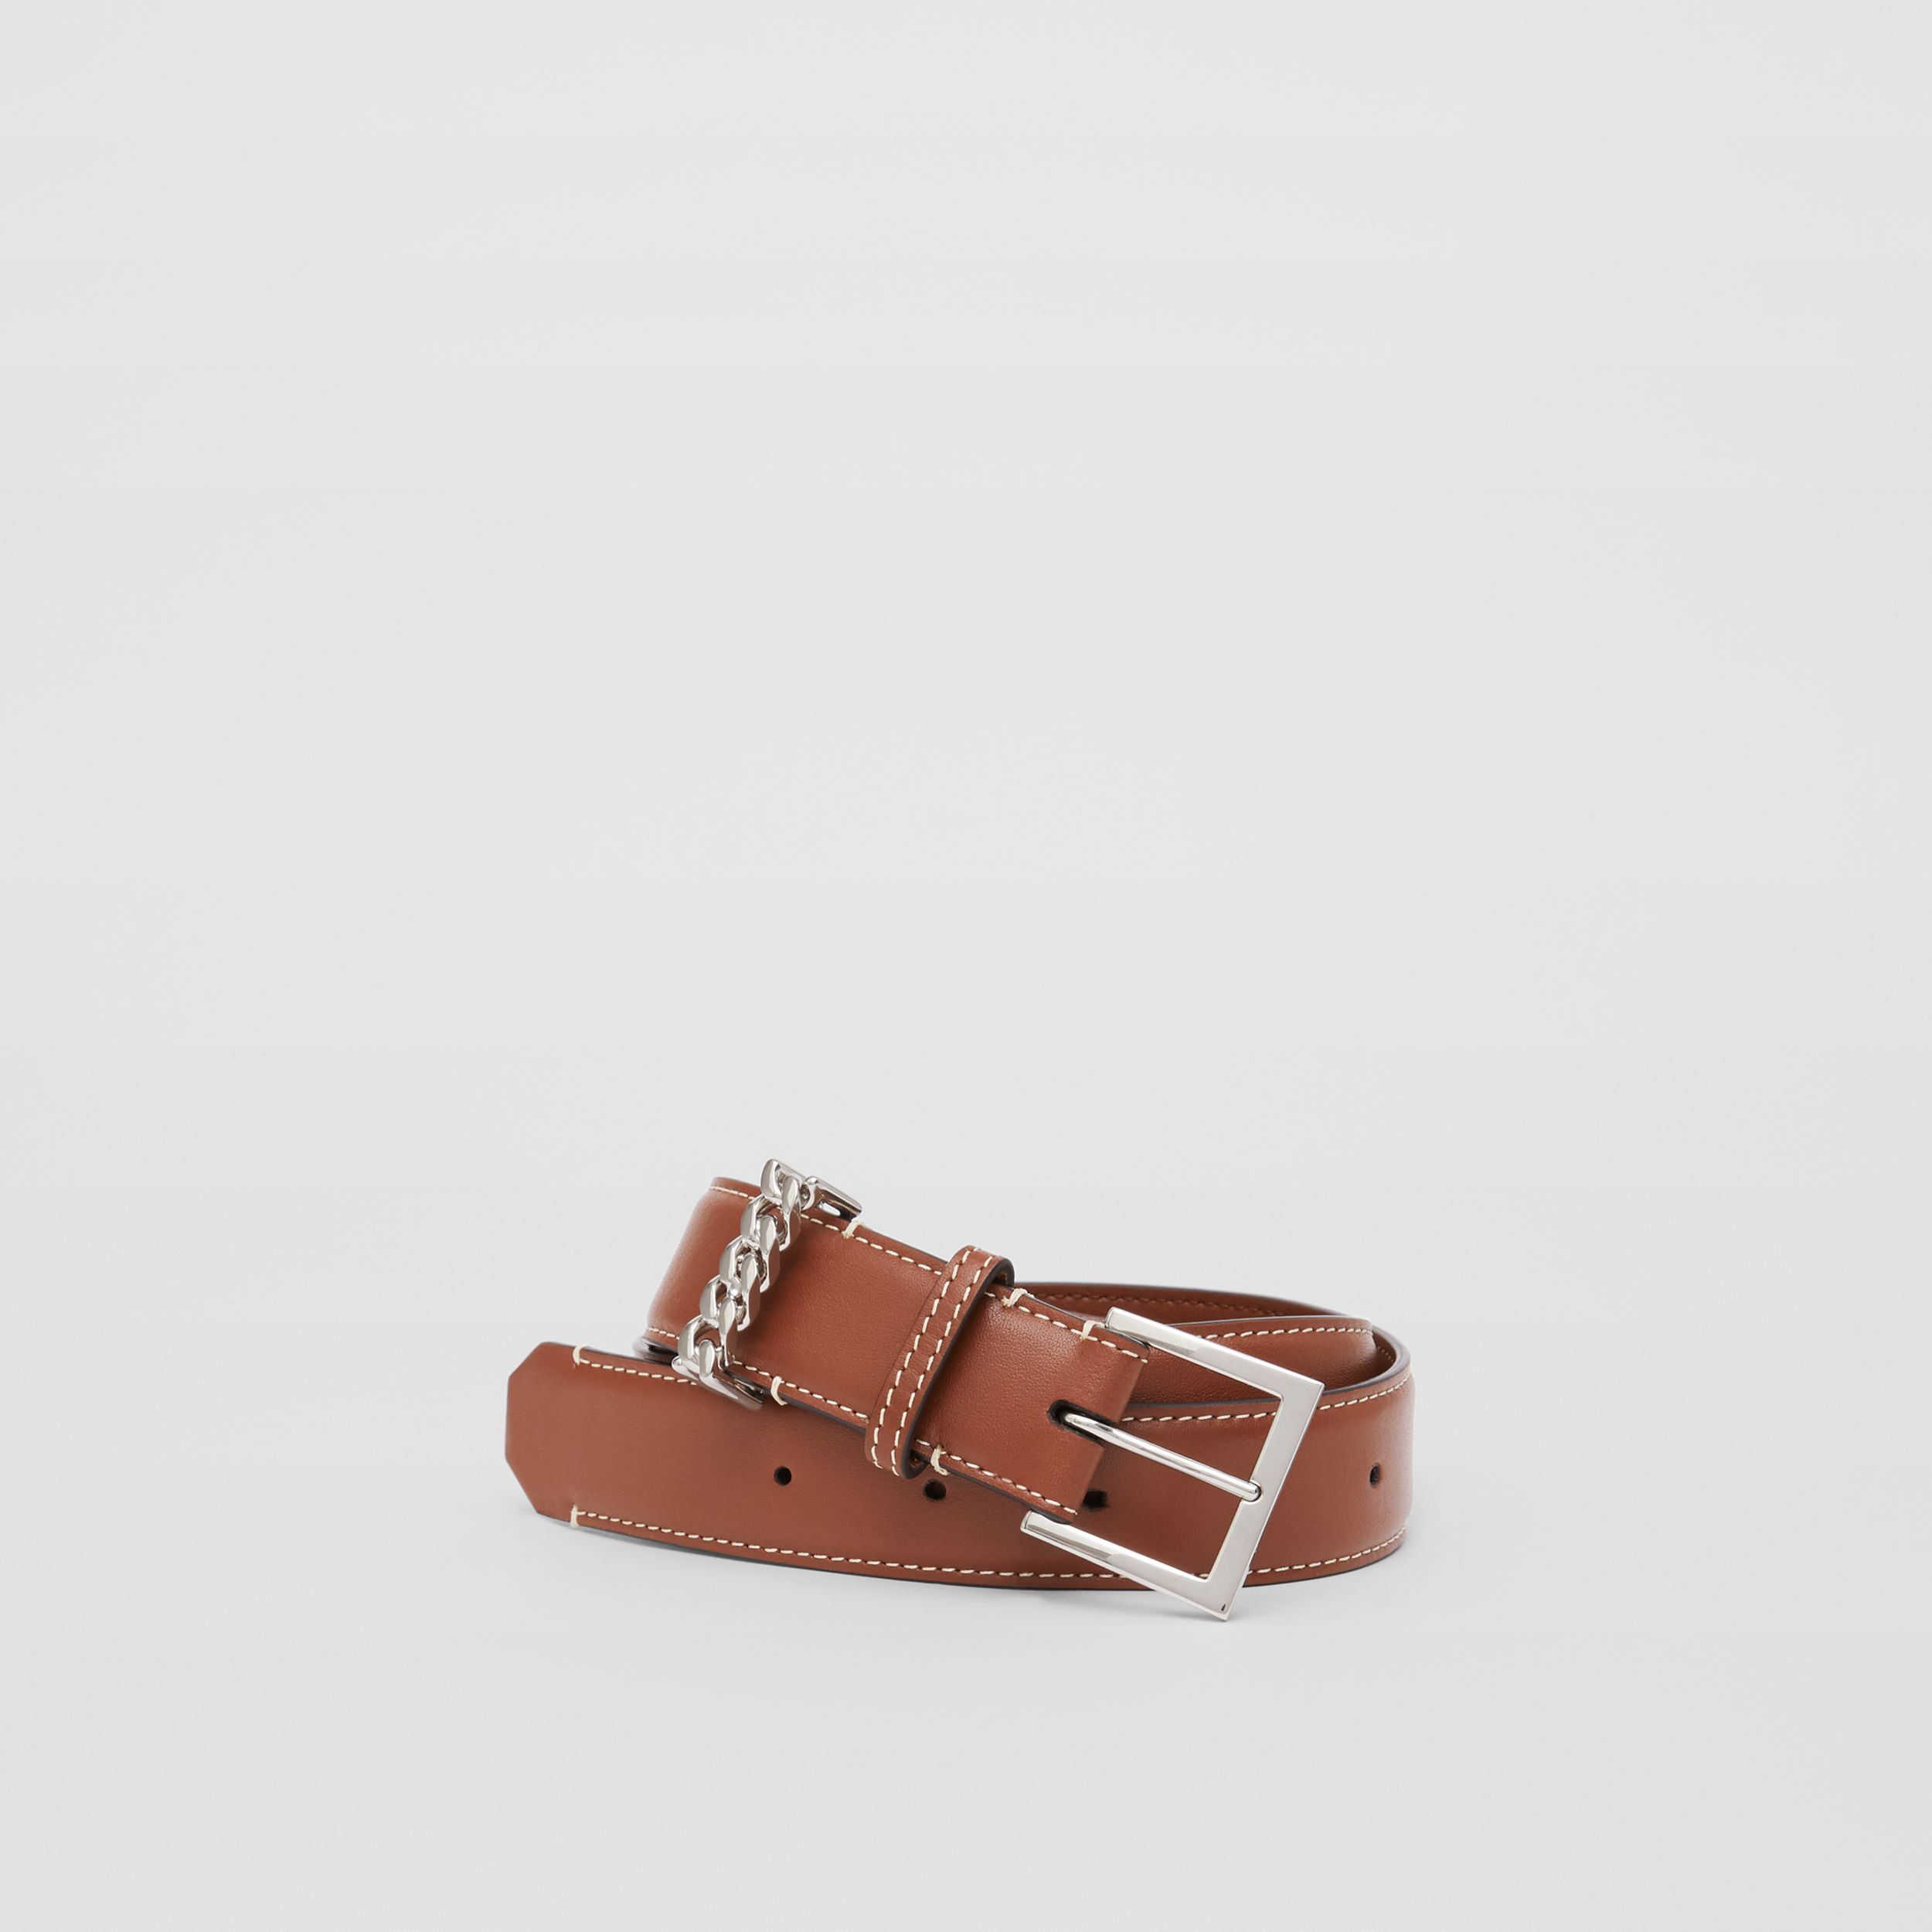 Chain Detail Topstitched Leather Belt in Tan/ecru - Women | Burberry Hong Kong S.A.R. - 1